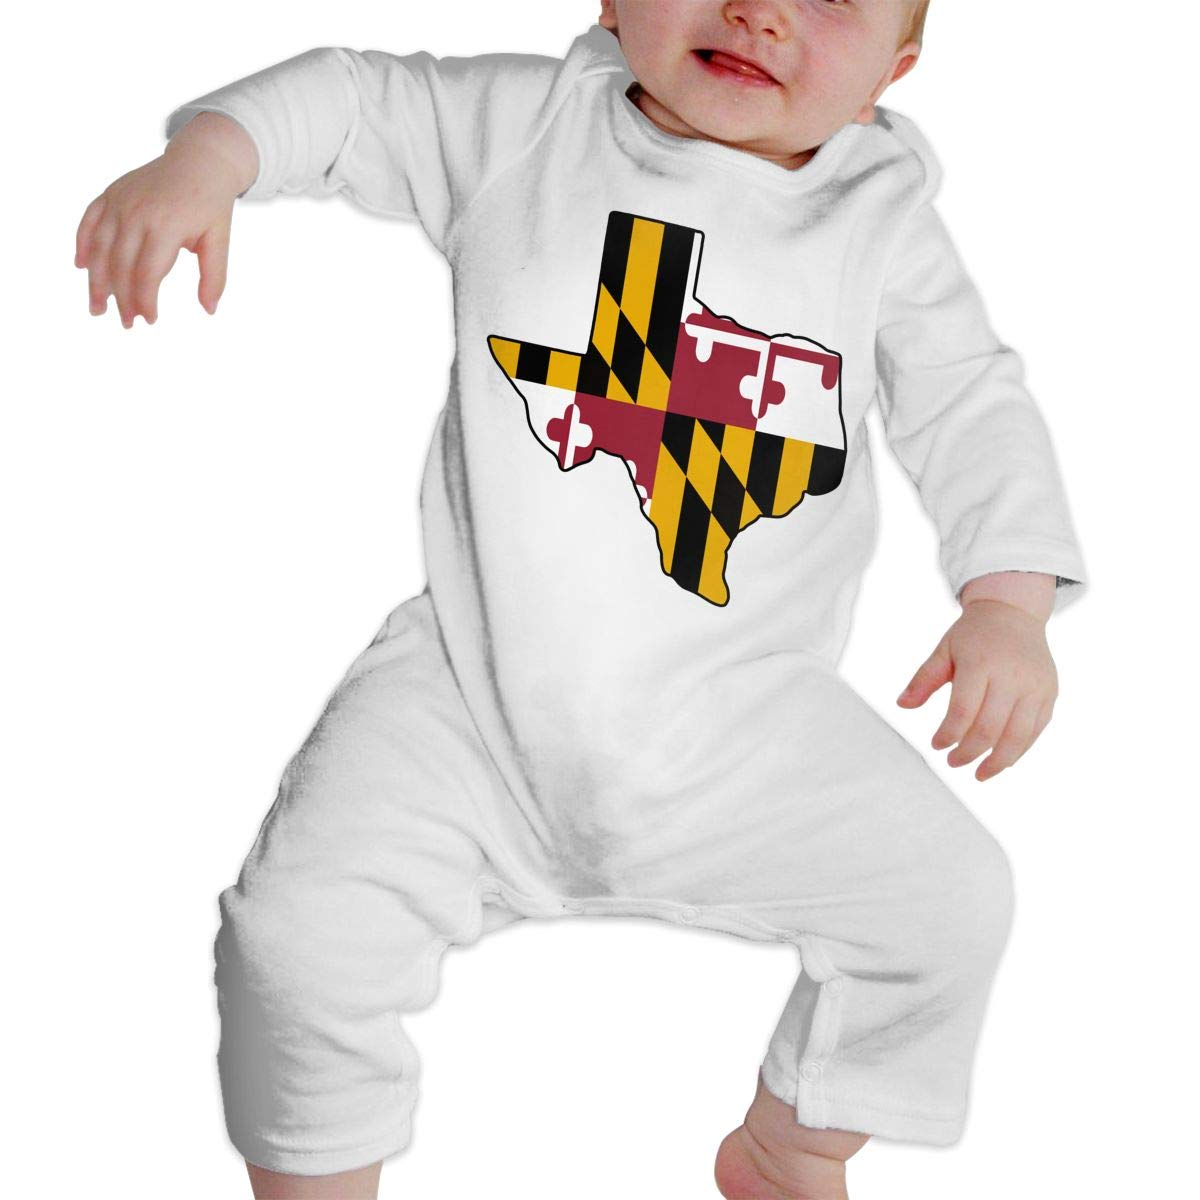 A1BY-5US Infant Baby Boys Girls Cotton Long Sleeve Texas Outline Maryland Flag Romper Bodysuit One-Piece Romper Clothes